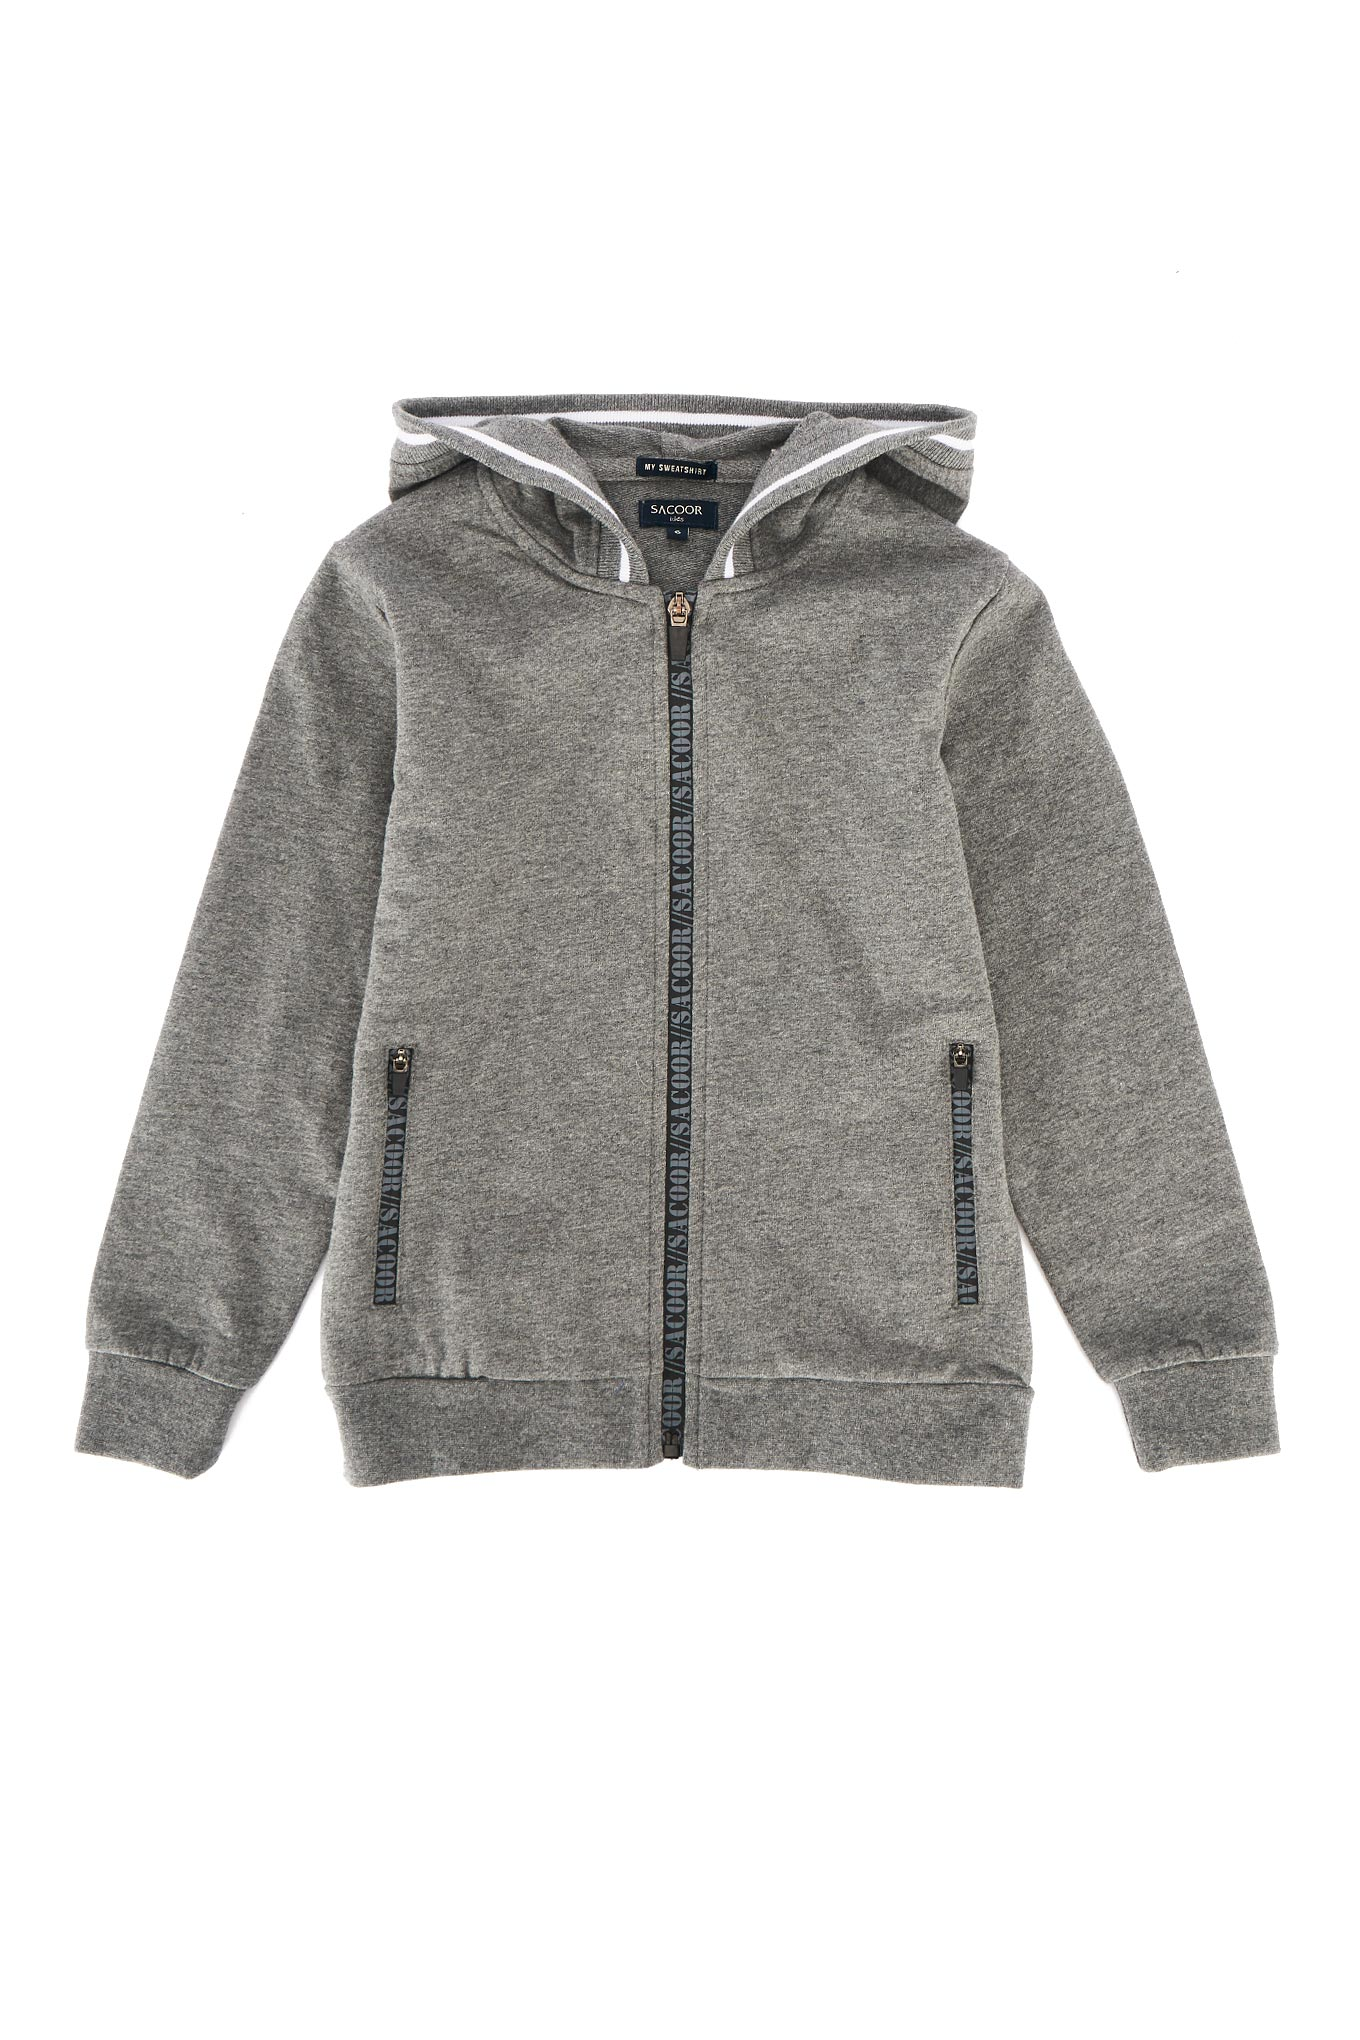 Sweatshirt Dark Grey Sport Boy